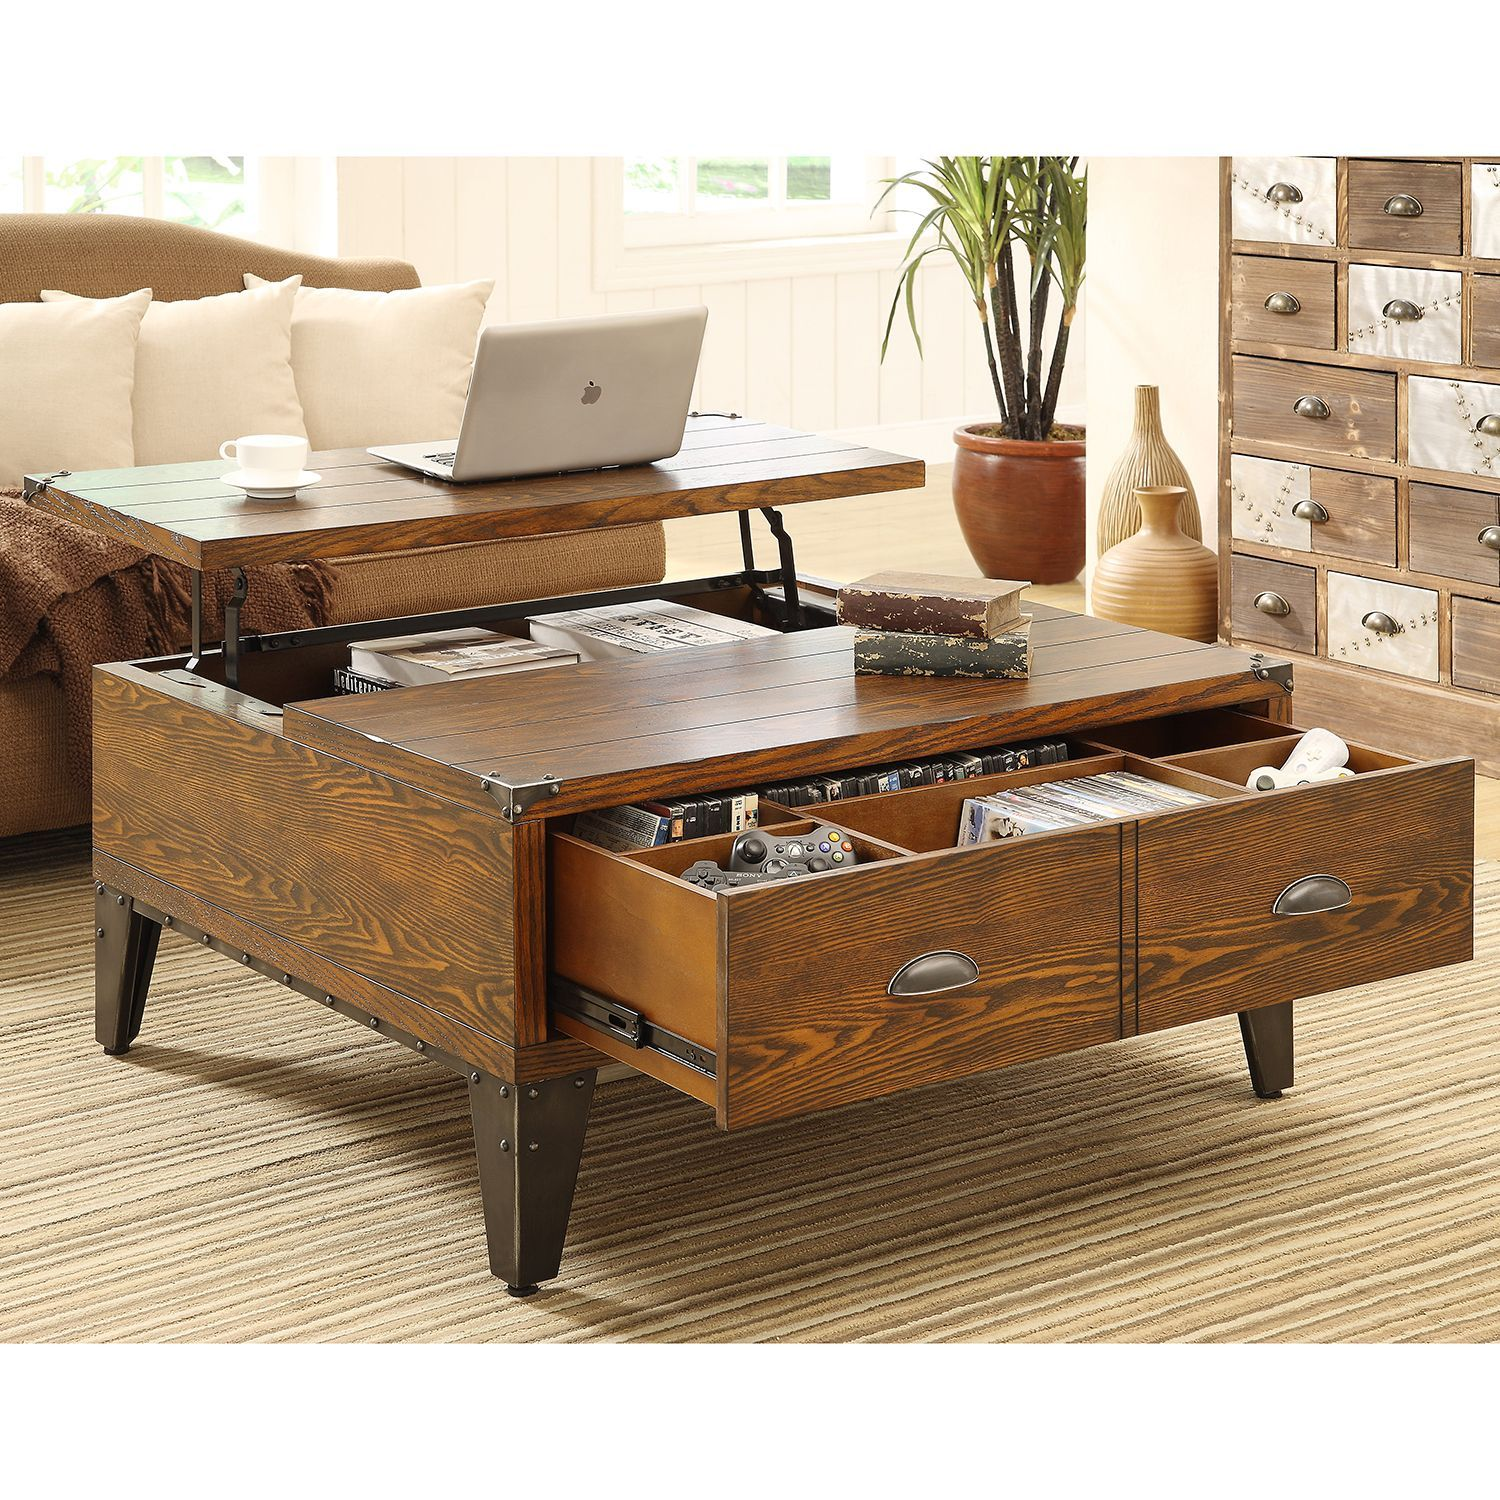 Wellington Lift-Top Coffee Table | Lift top coffee table, Coffee ...